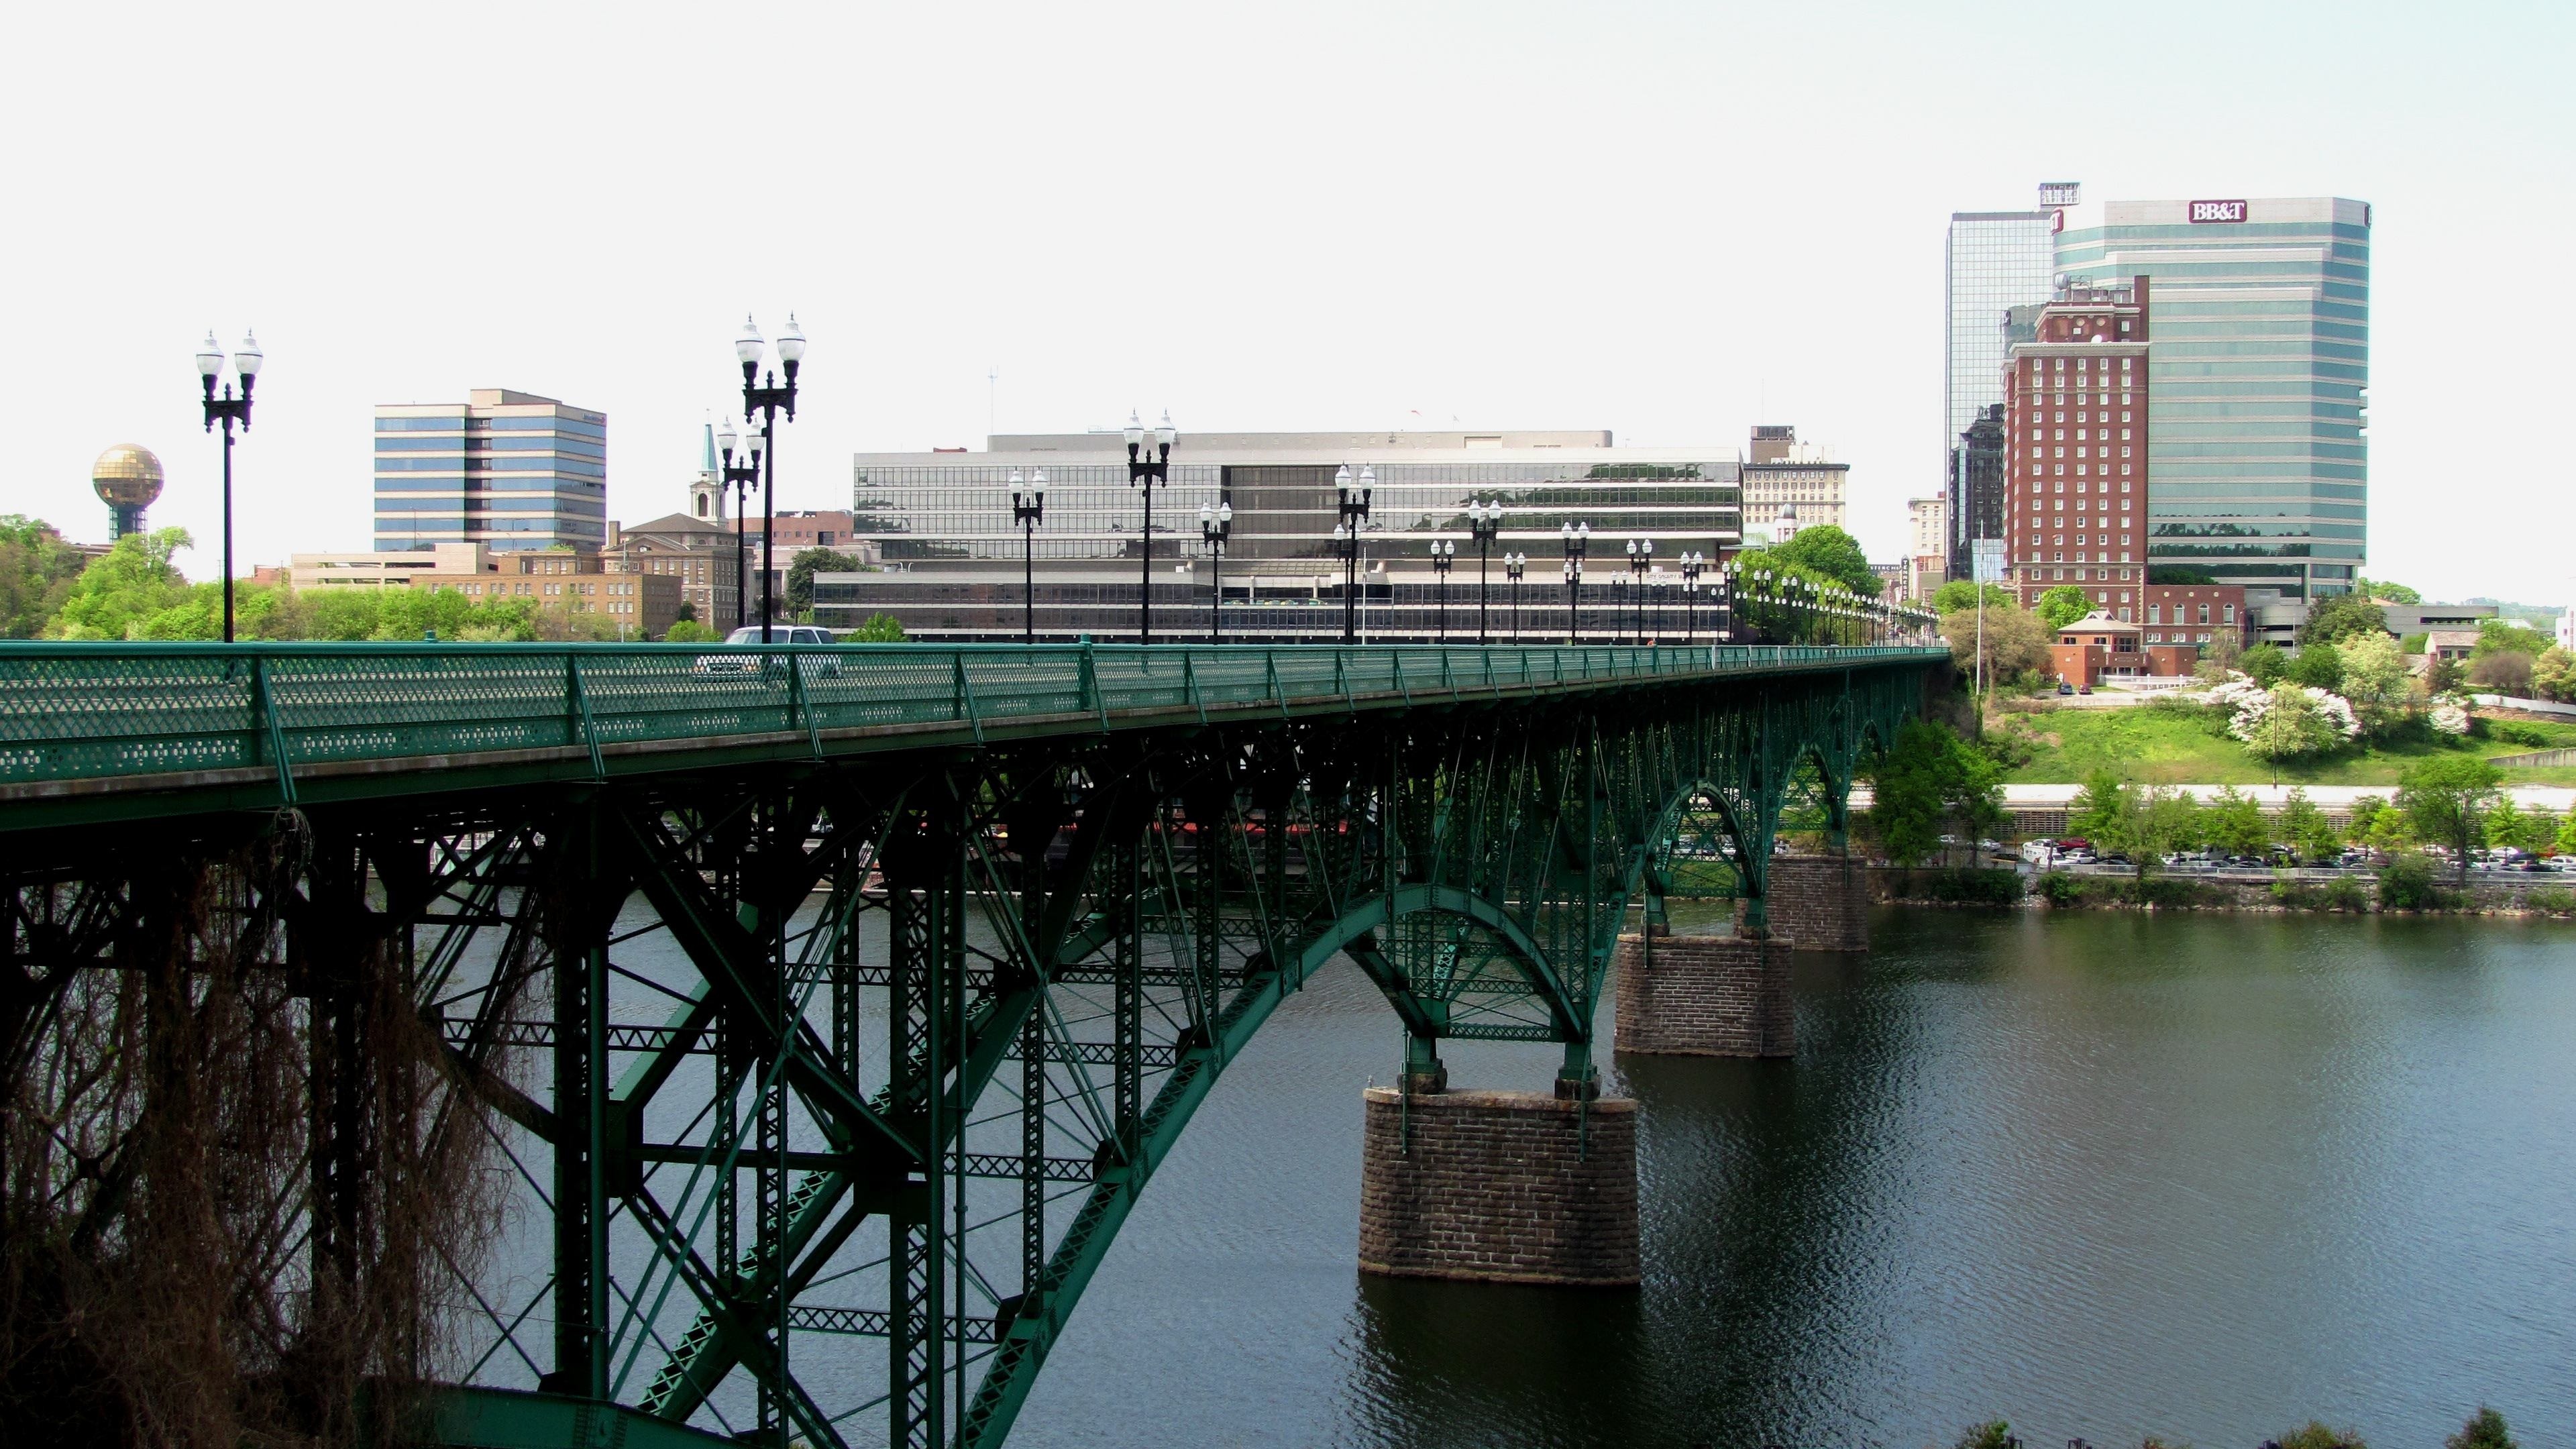 File:Gay-street-bridge-knoxville-tn1.jpg